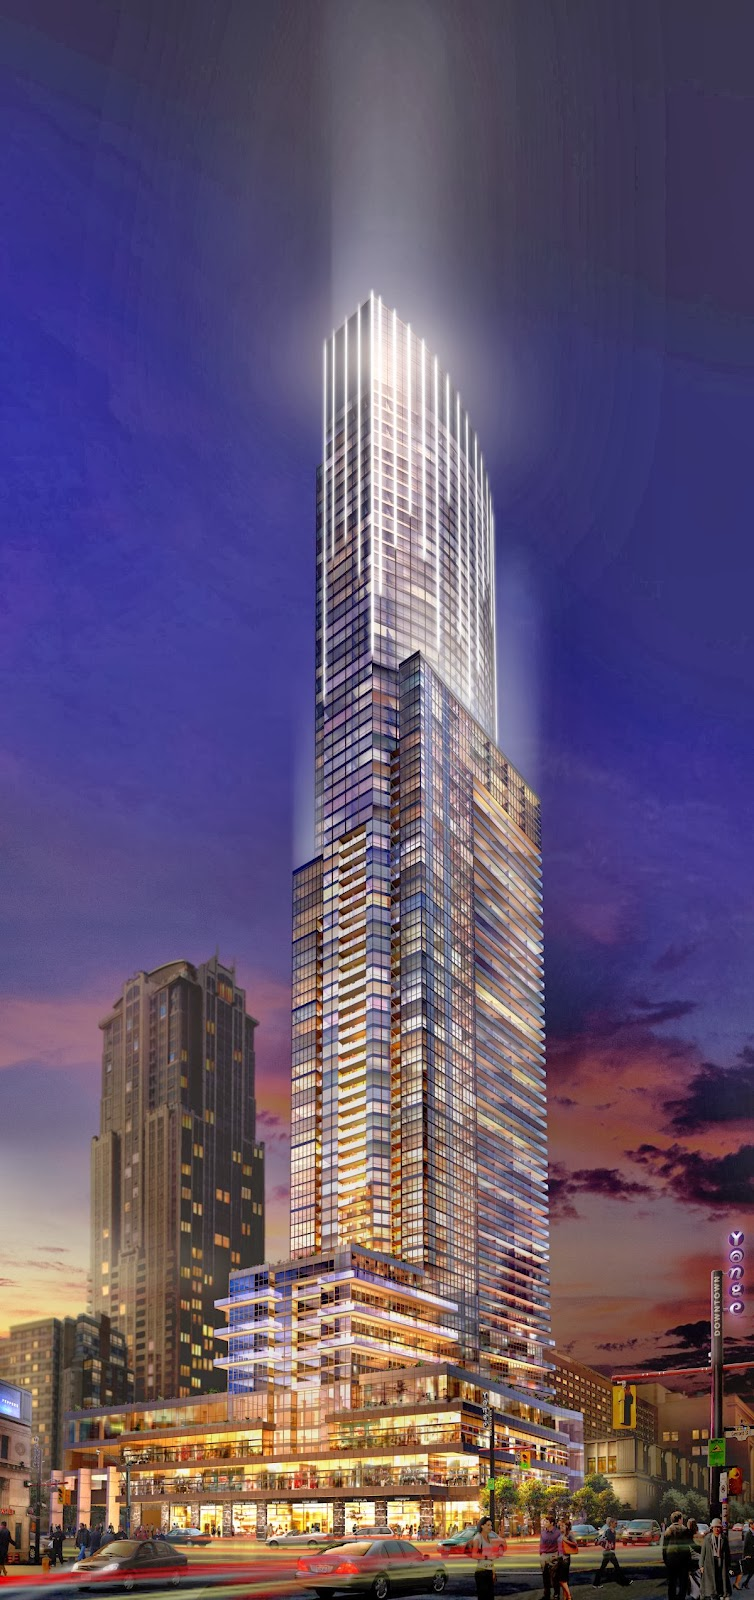 Aura Condos Toronto For sale or rent.